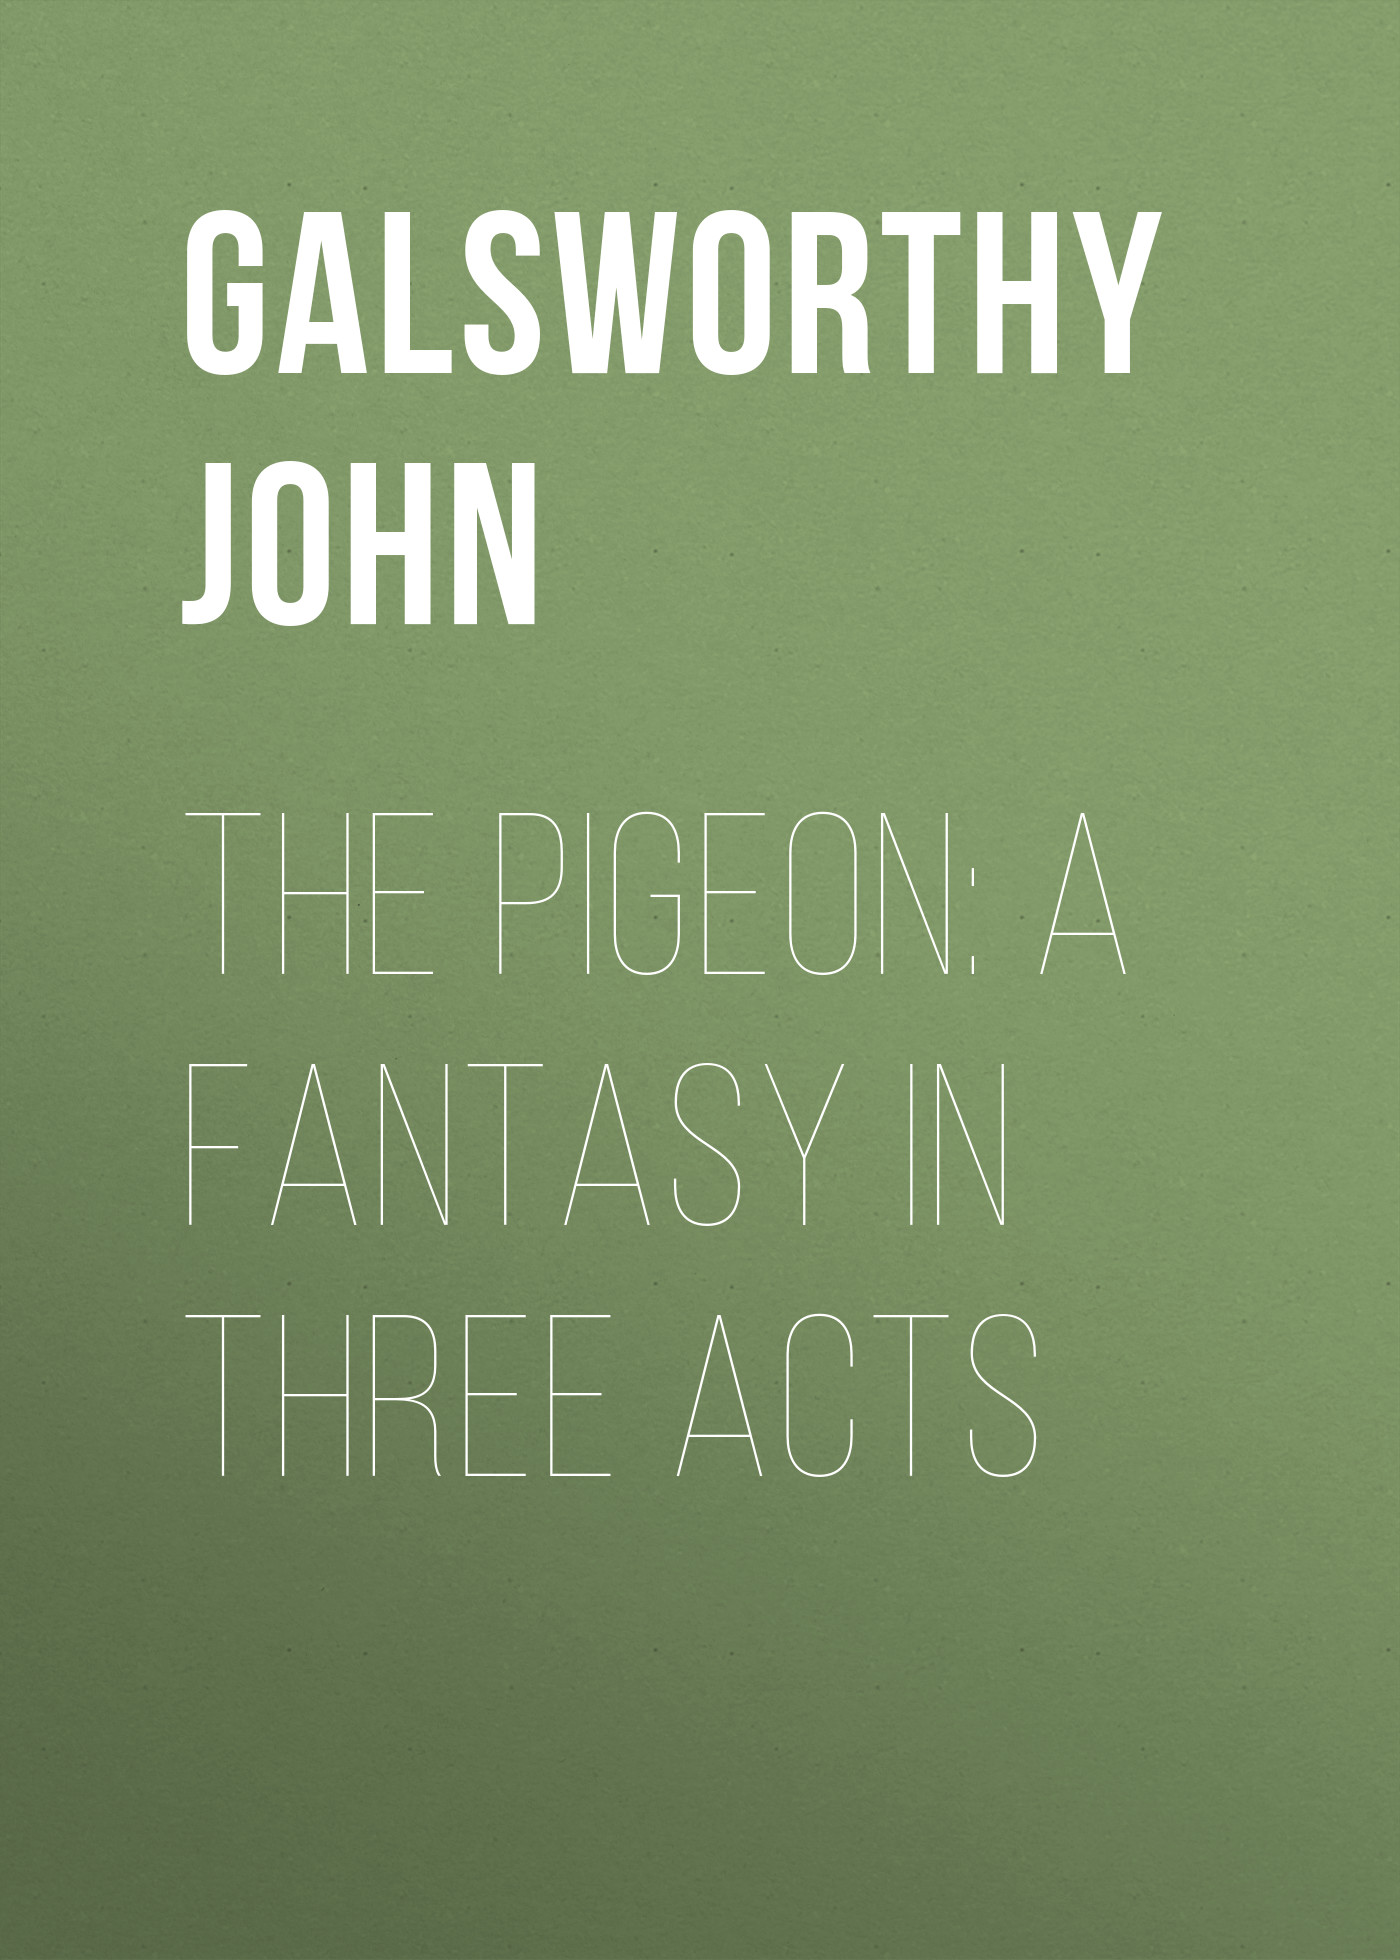 Galsworthy John The Pigeon: A Fantasy in Three Acts galsworthy john quotes and images from the works of john galsworthy